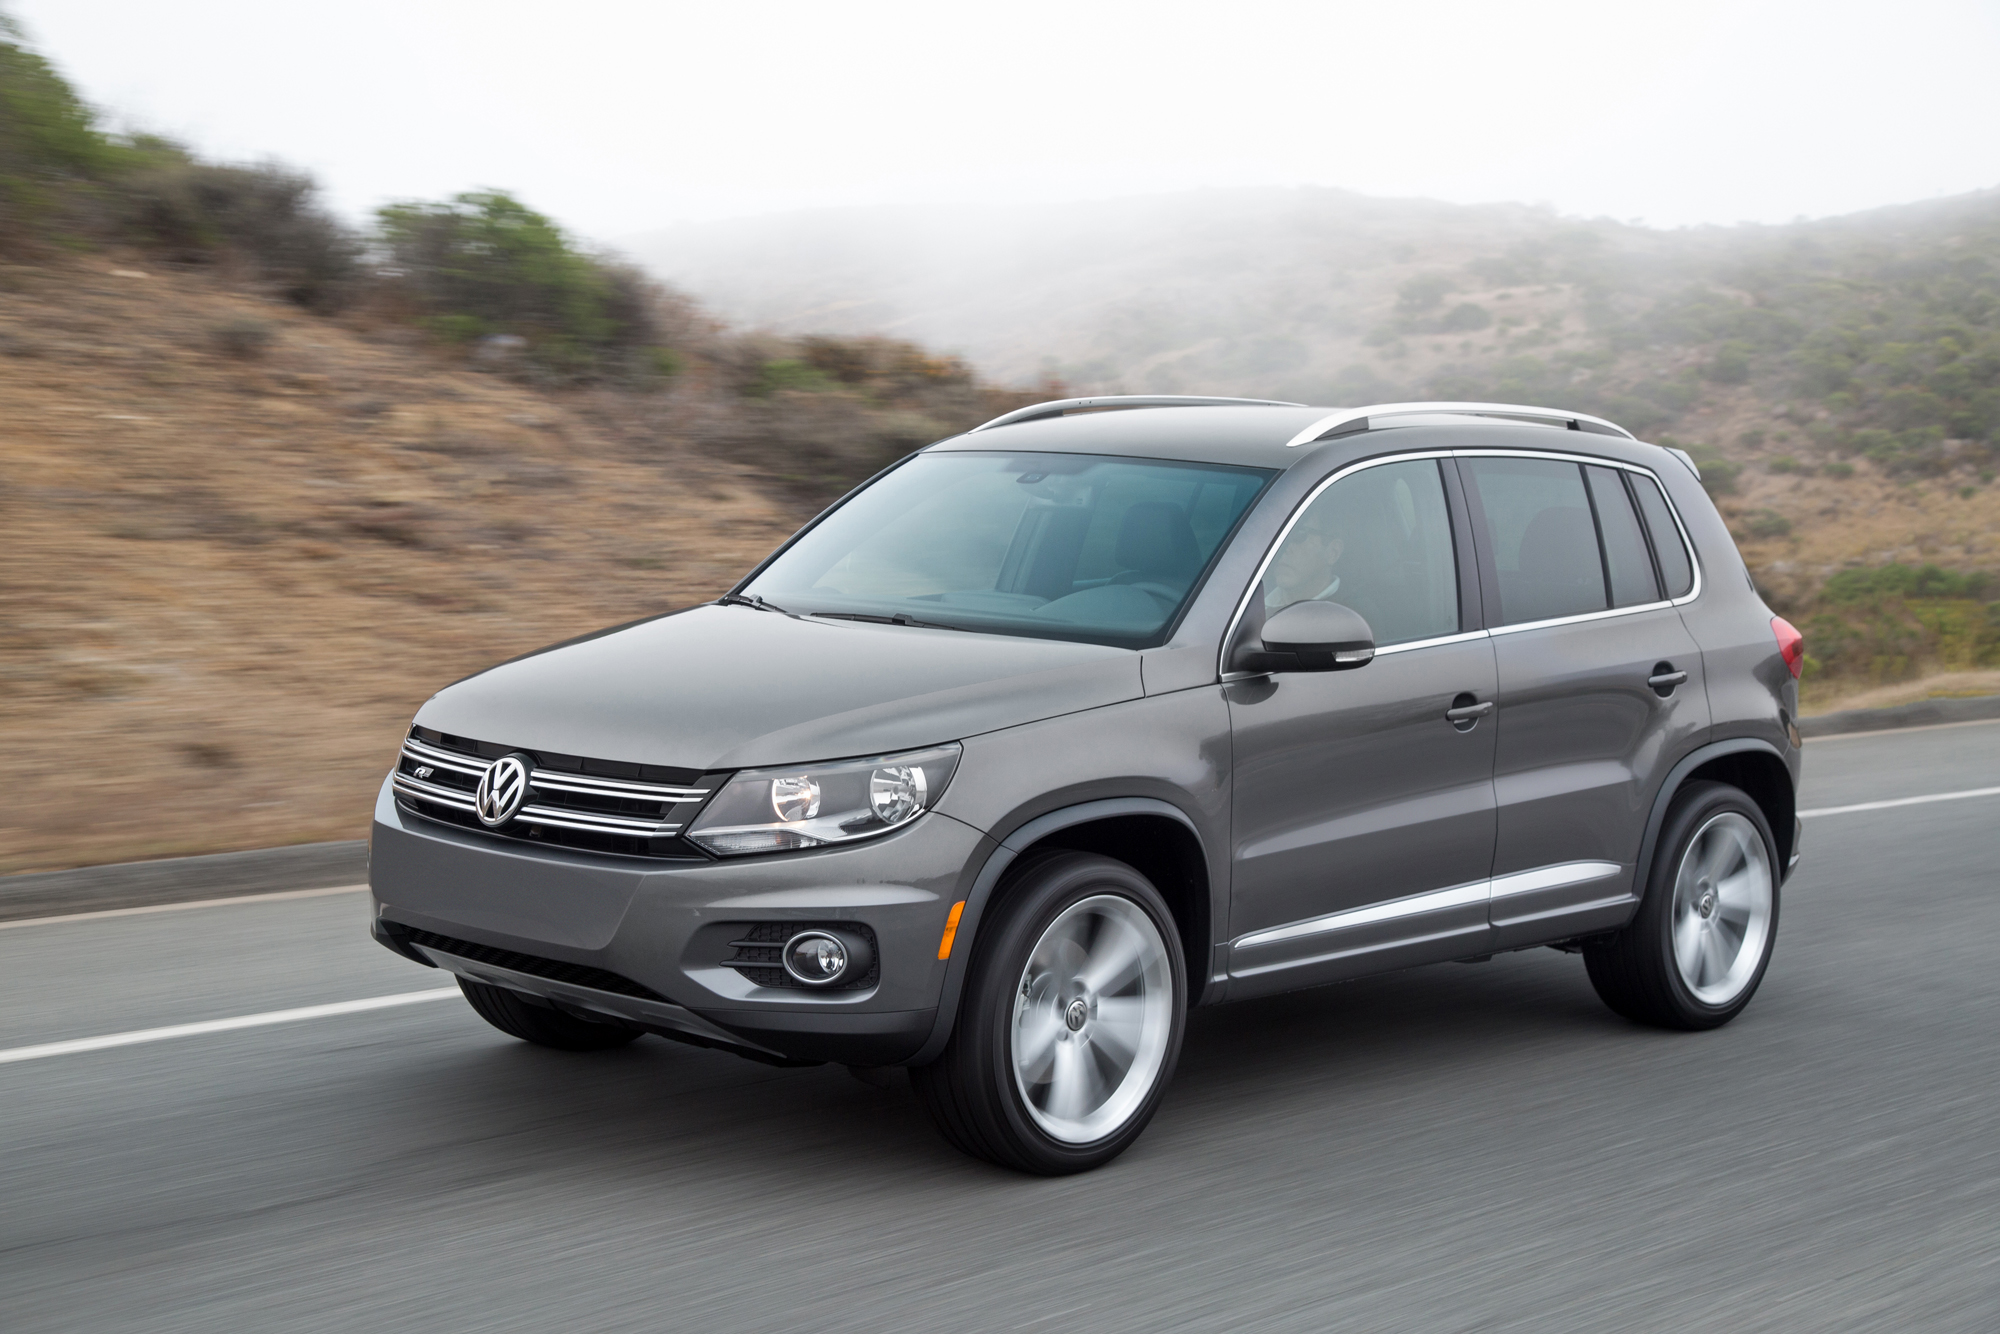 vw tiguan 2011 manual transmission